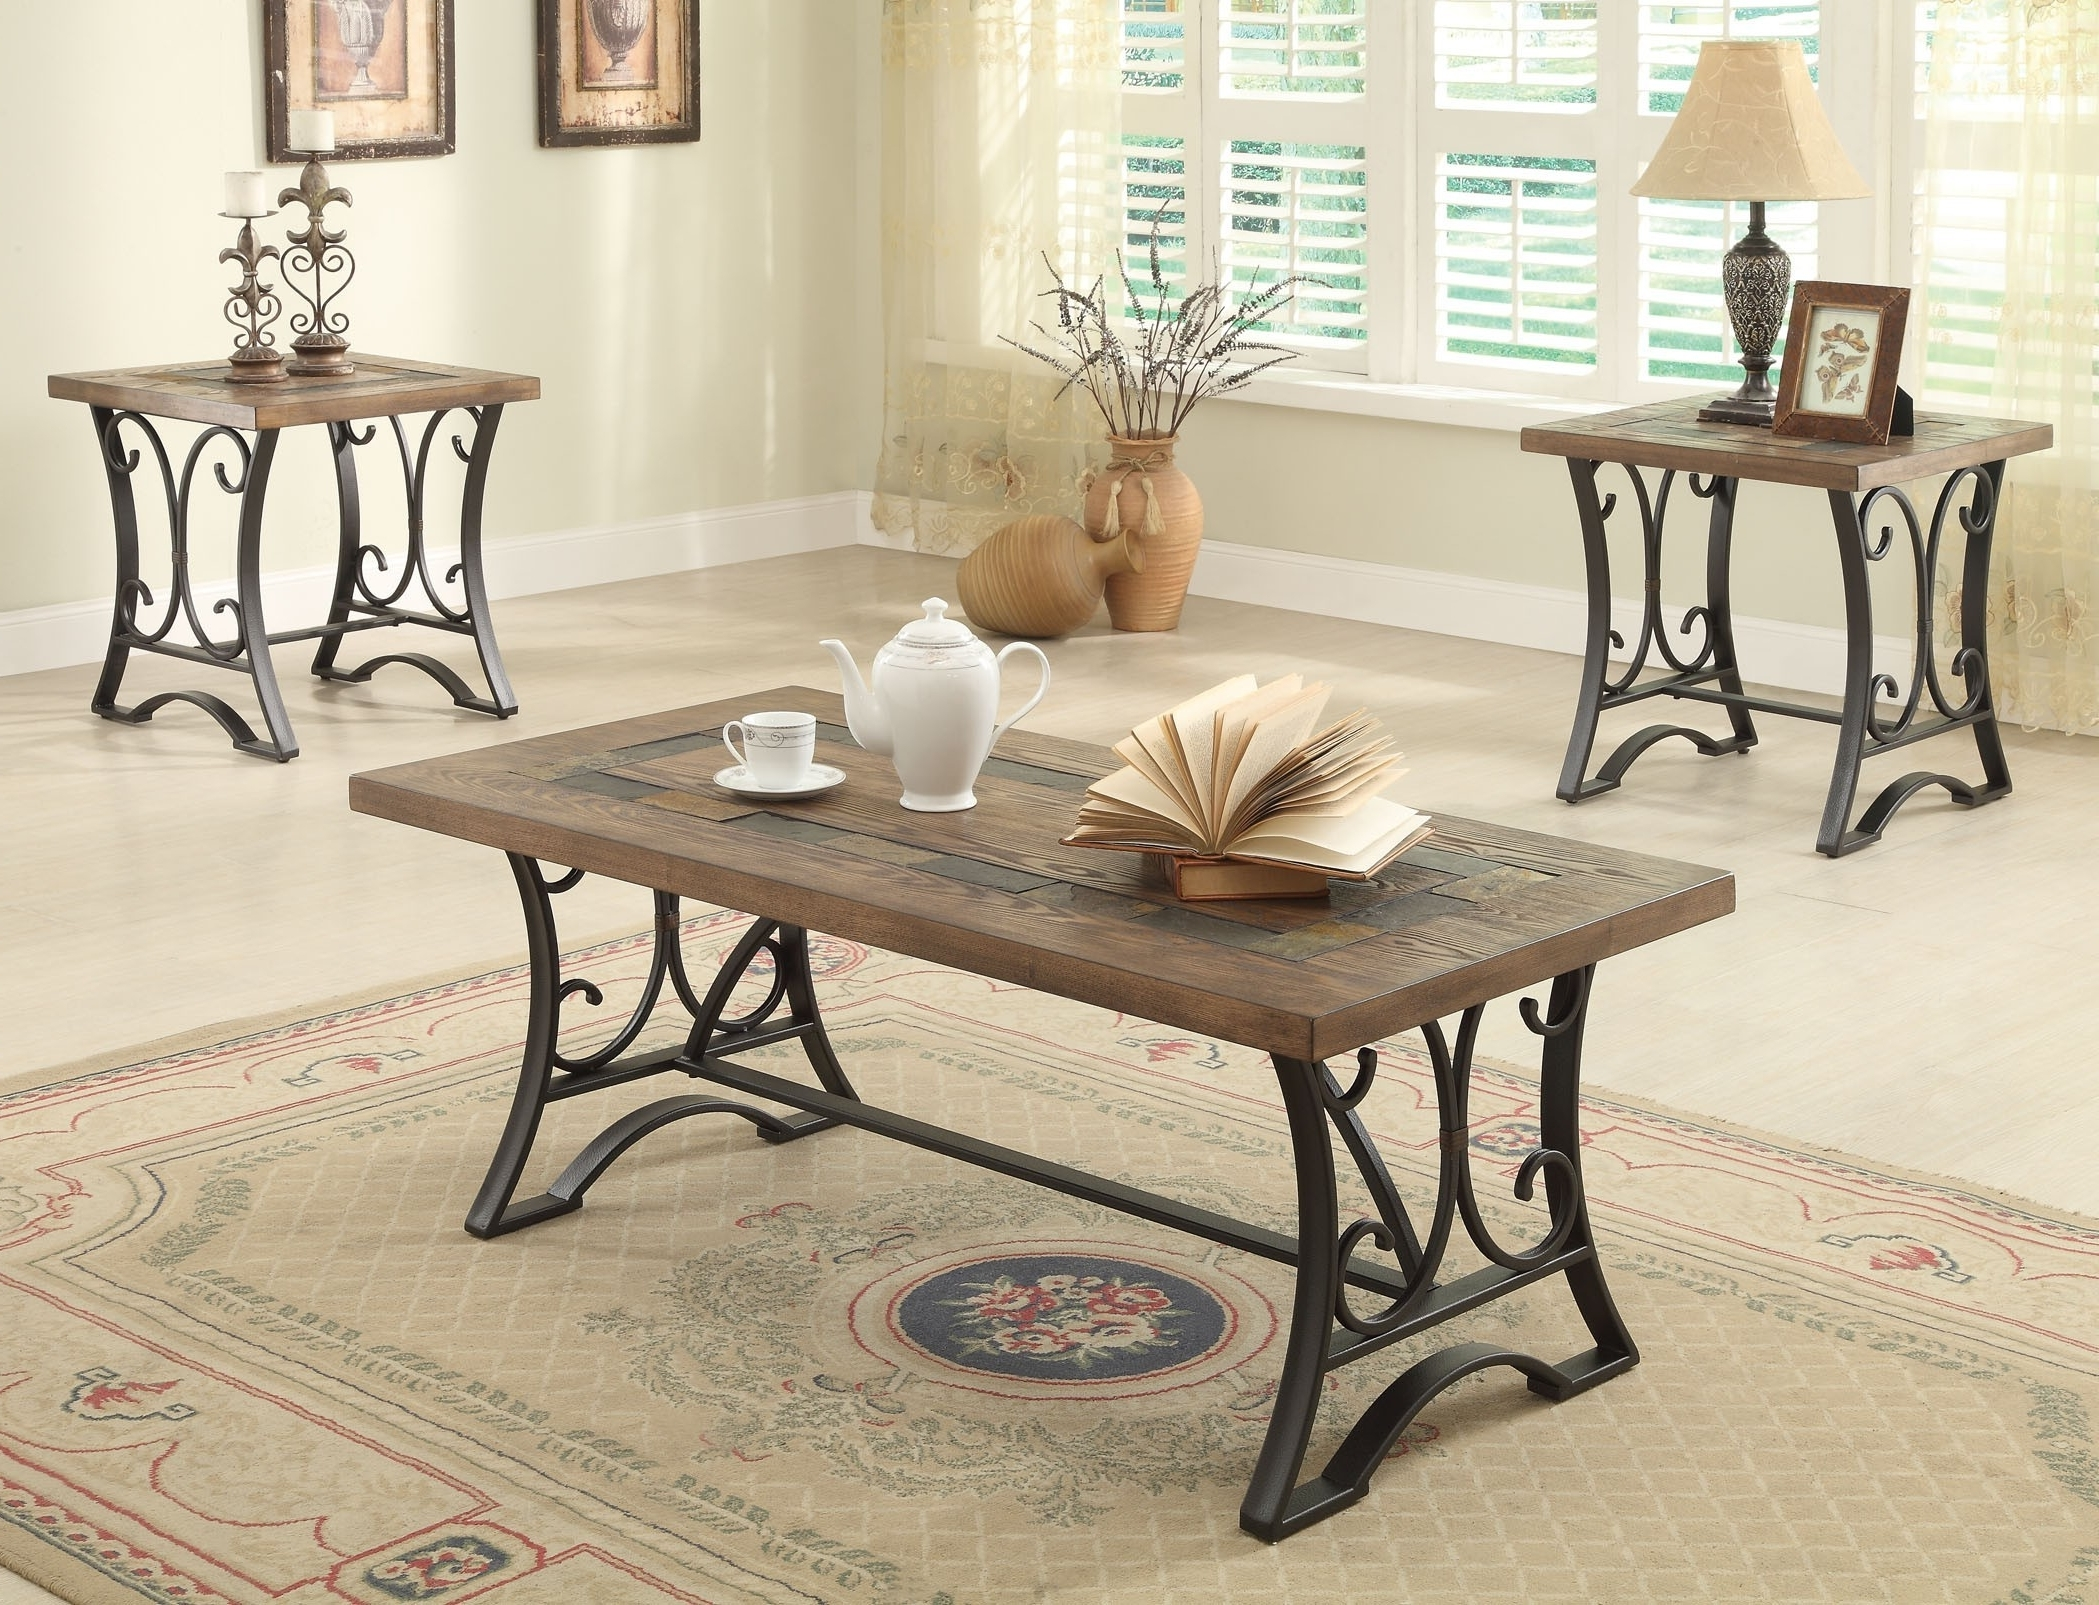 Fashionable Potomac Adjustable Coffee Tables Intended For 11 Lovely Metal Coffee Table Sets (View 12 of 20)